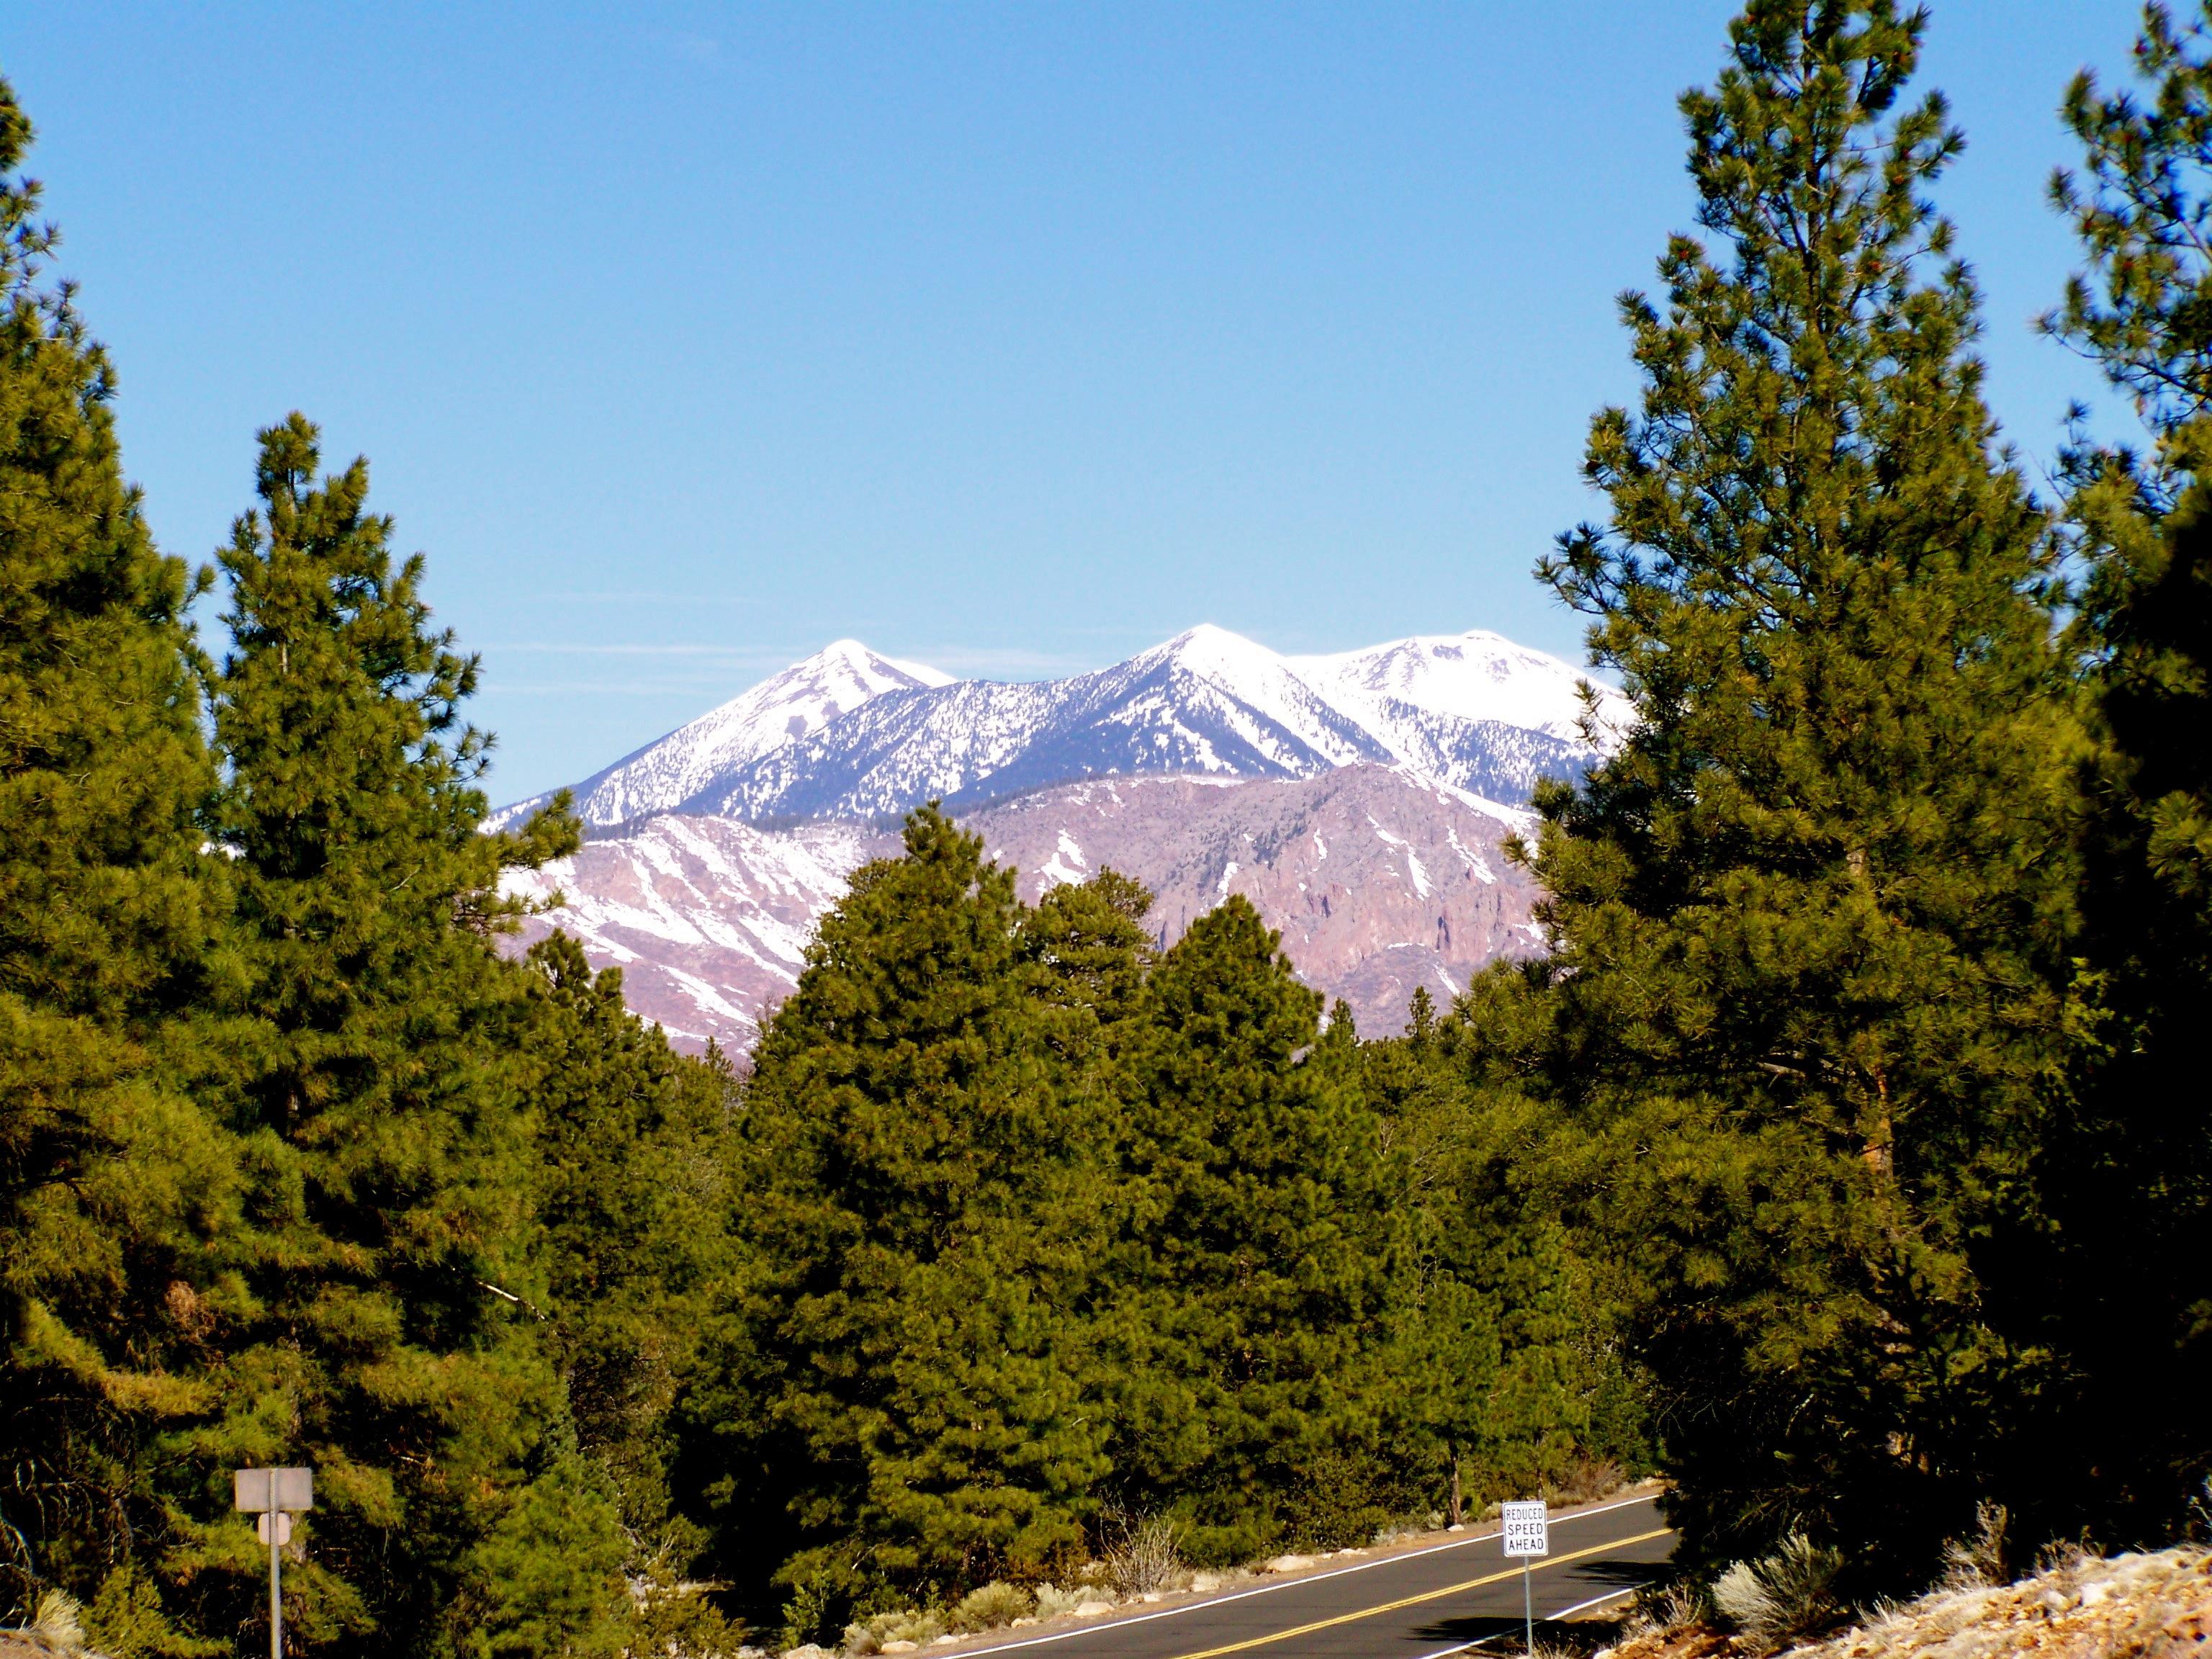 The San Francisco Mountains from Flagstaff